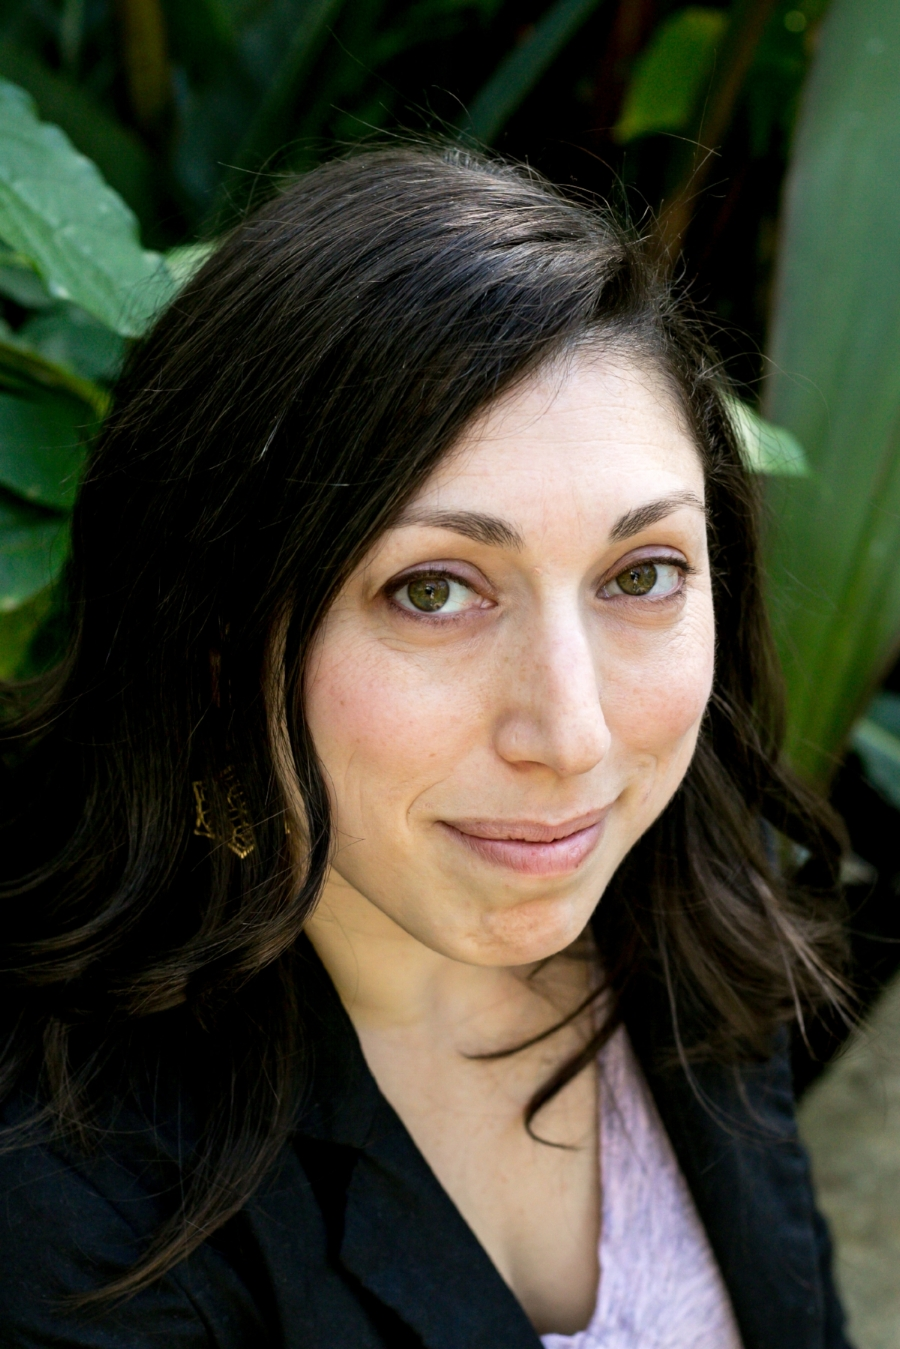 Melissa Weinberg, LCPC - Owner and therapist.Learn more about me and my approach.